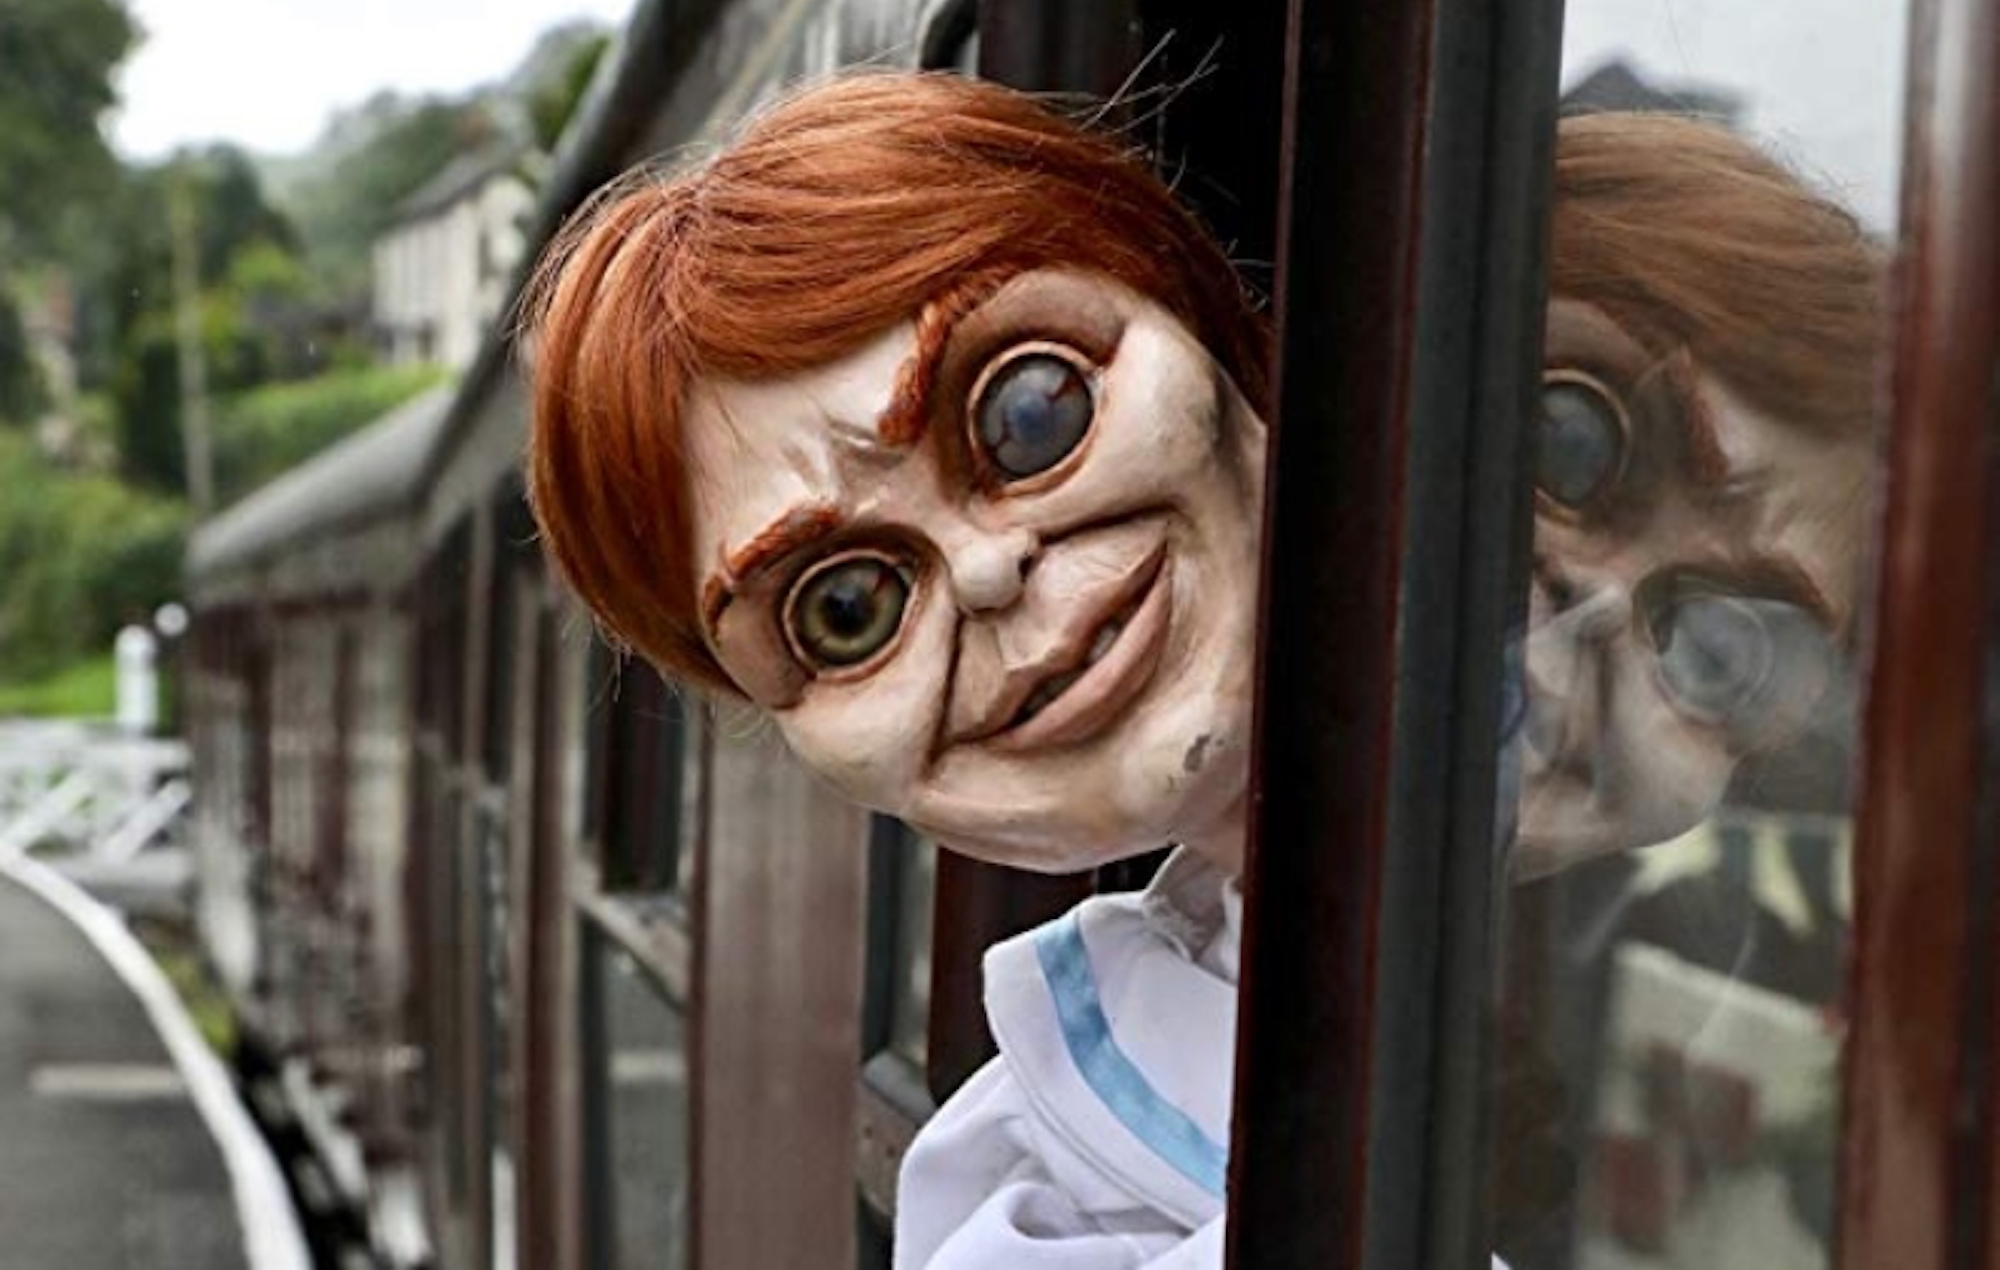 Robert the doll from the film franchise